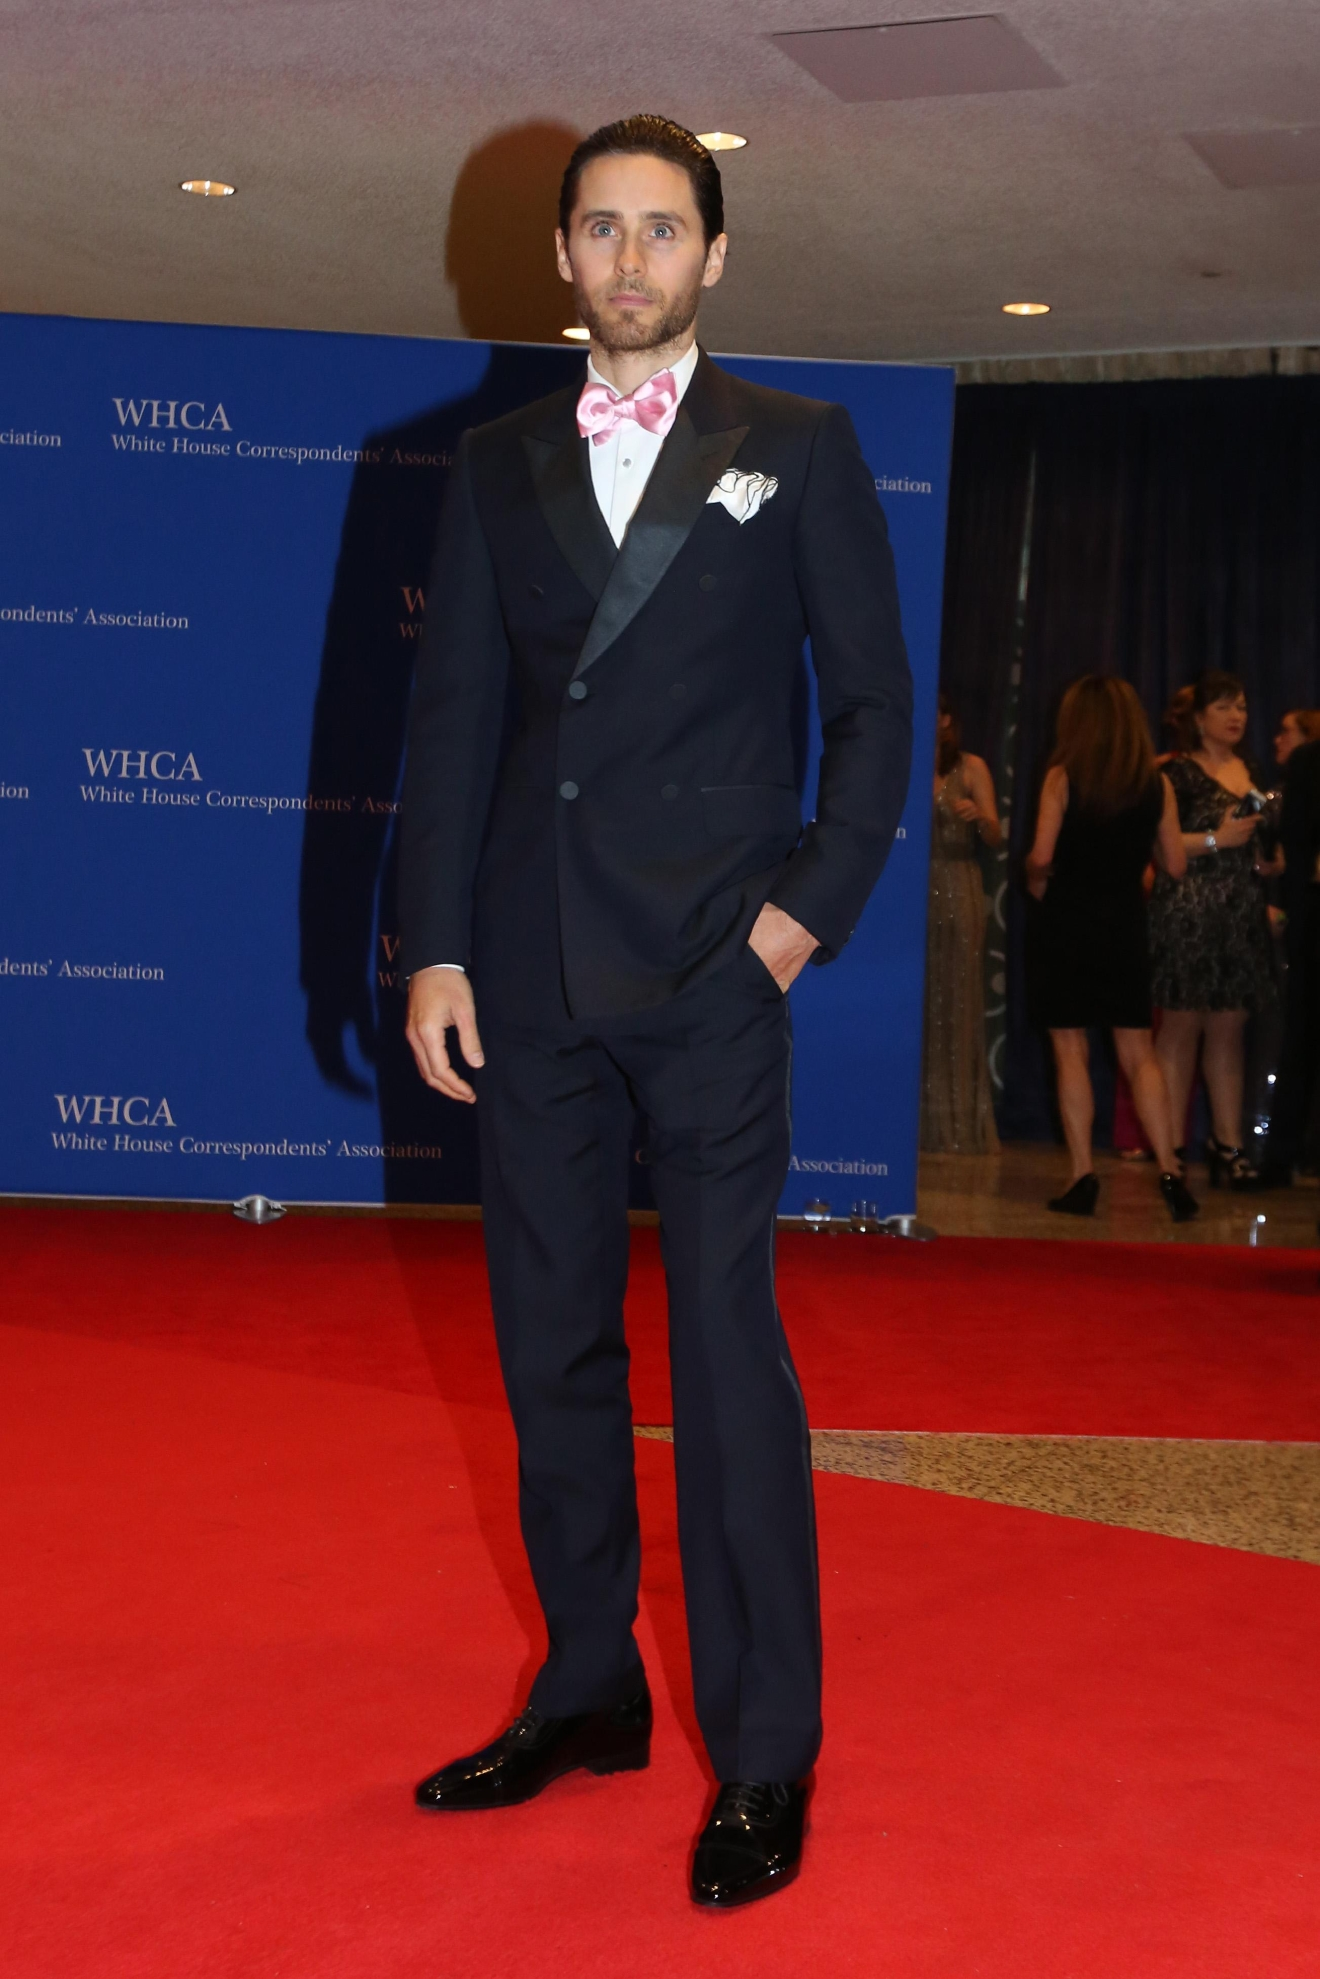 The satin lapels and pink bow tie give Jared Leto a leg up on his peers for best dressed red carpet man. (Image: Amanda Andrade-Rhoades/ DC Refined)